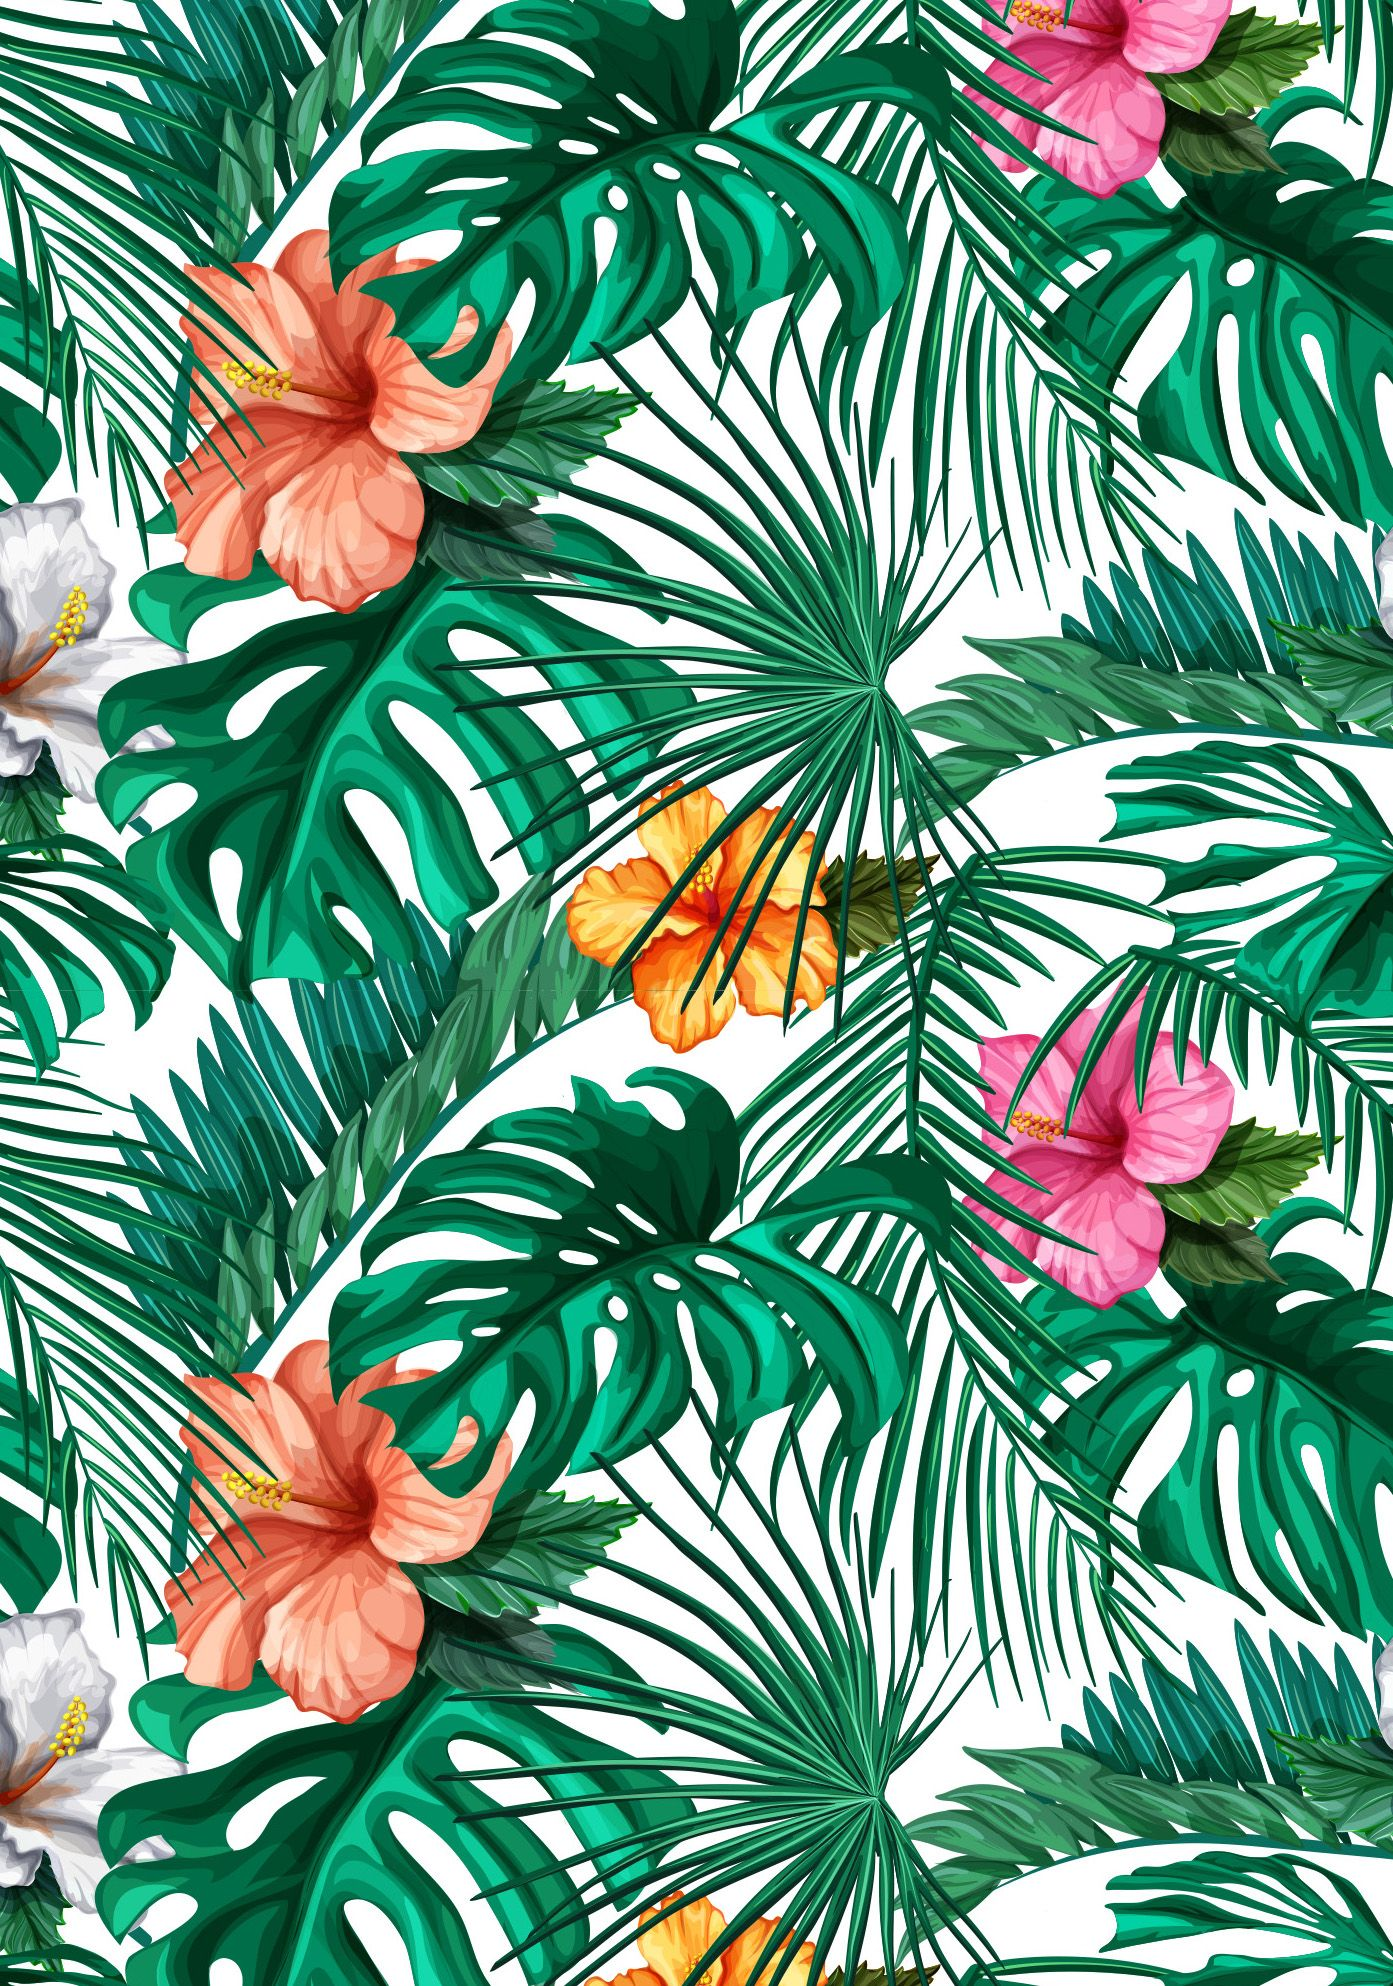 Tropical Flower Wallpaper Mural Be Bold Be Brave And Make Your